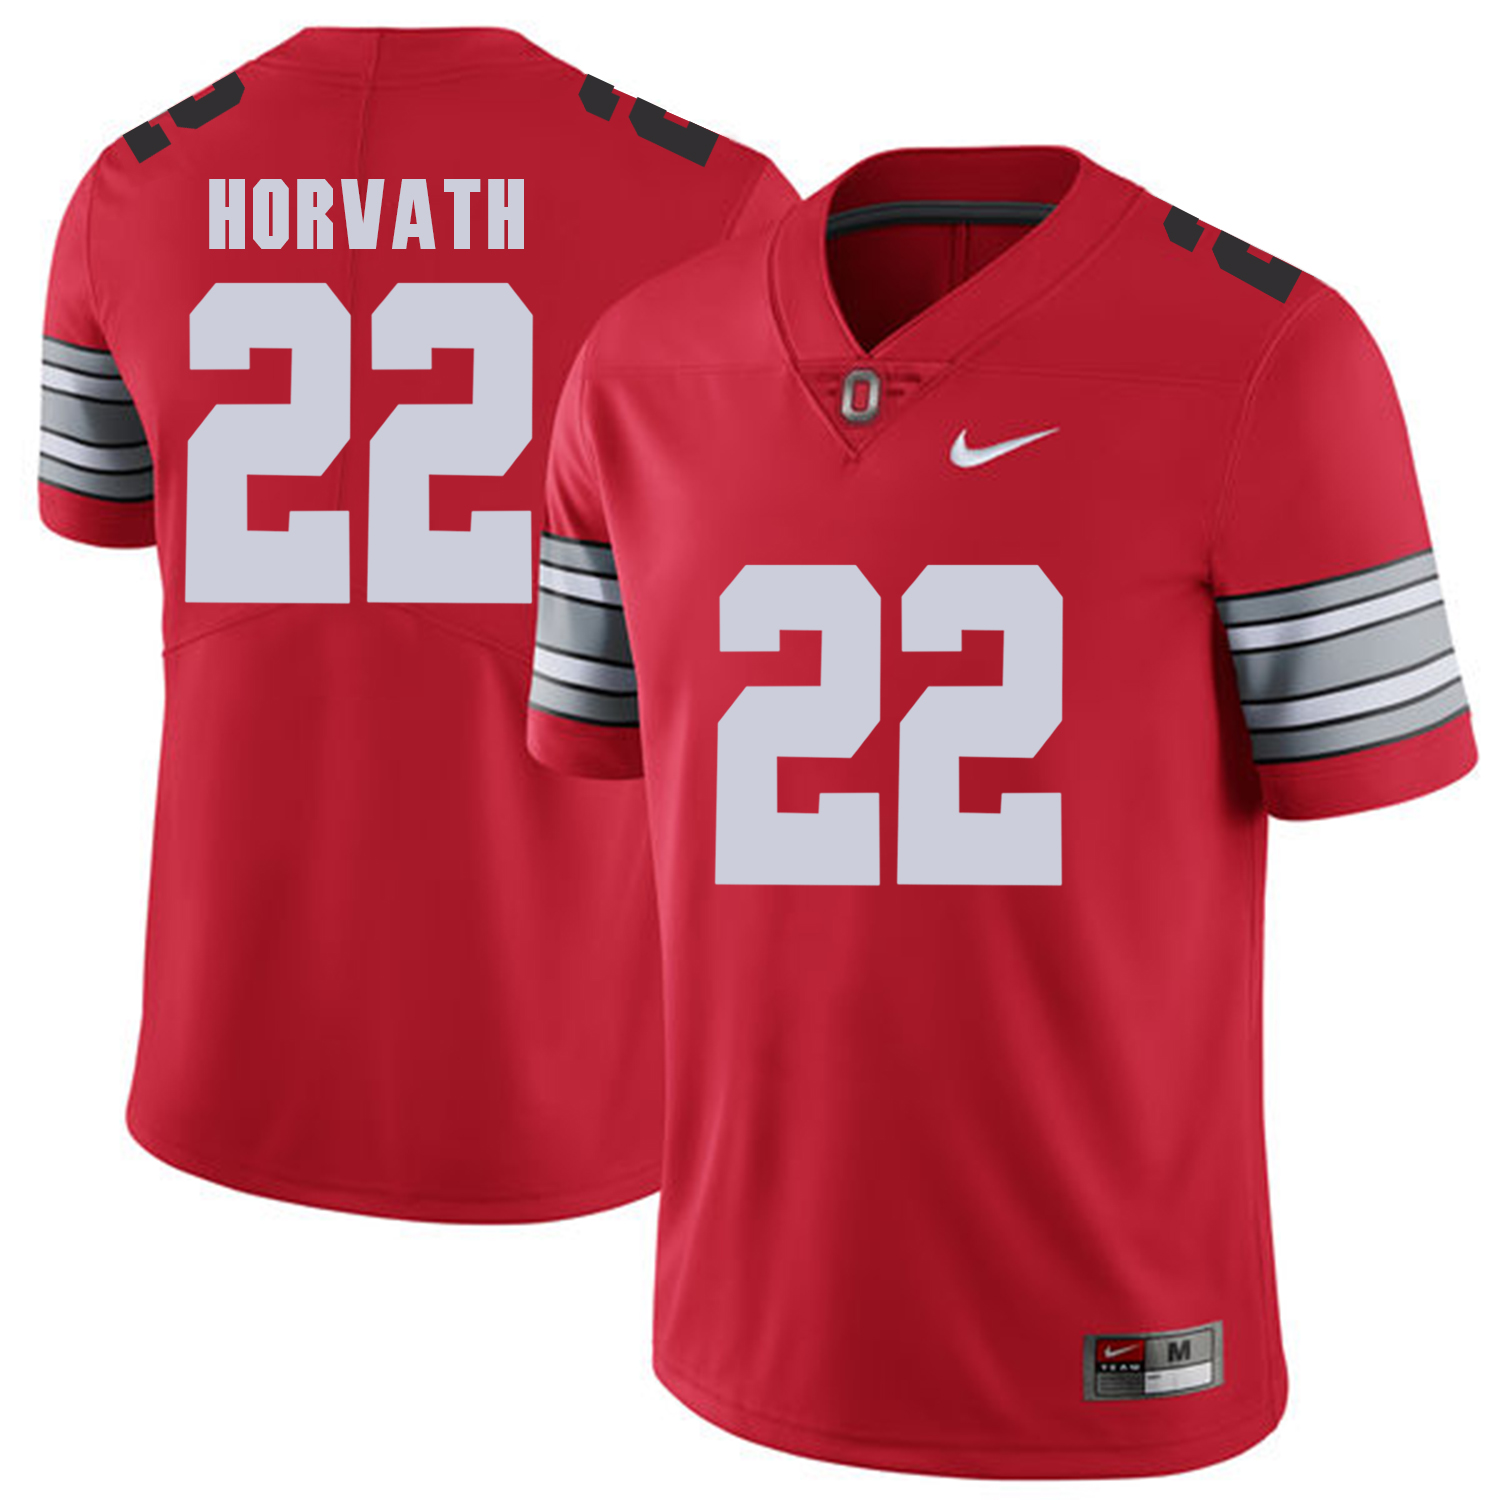 Men Ohio State 22 Horvath Red Customized NCAA Jerseys